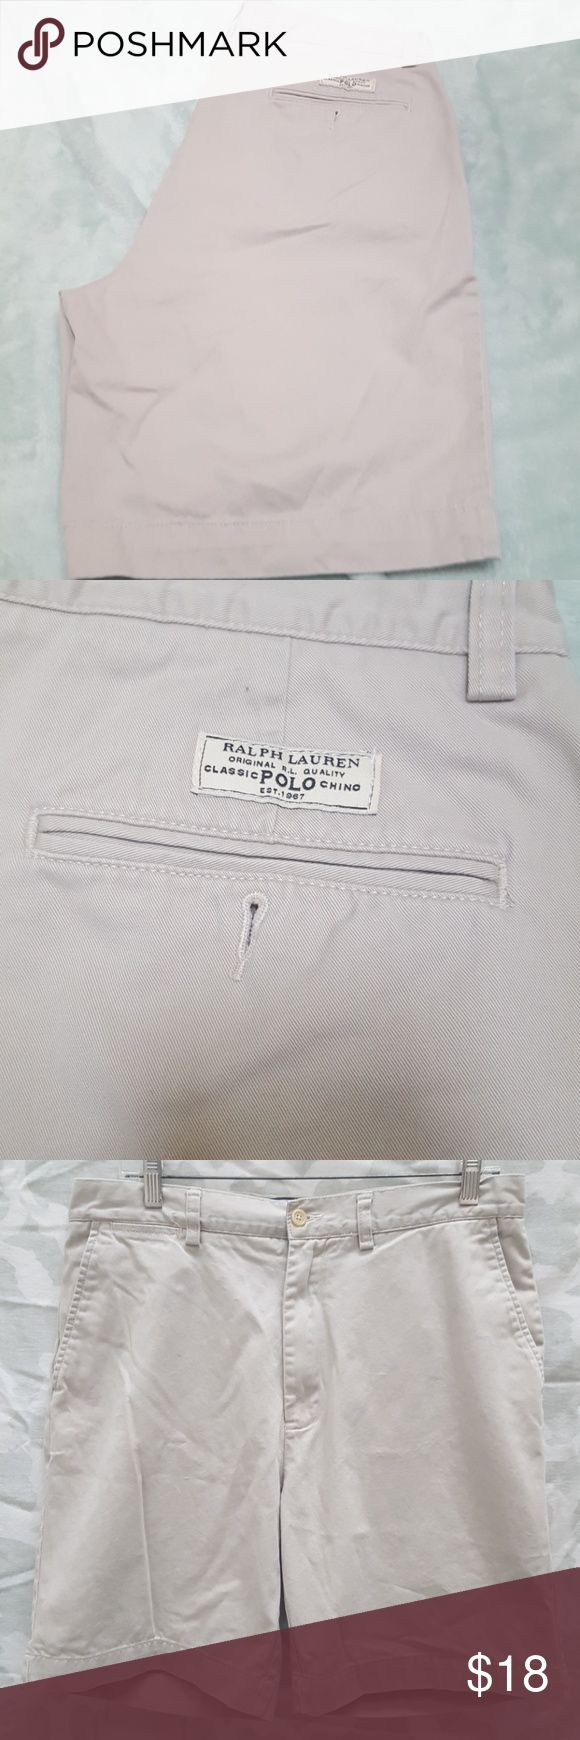 Vtg Mens Polo Ralph Lauren Classic Chino Shorts For sale is a pair of Vintage Mens Polo Ralph Lauren Classic Chino Prospect Shorts.  They are a Mens Waist Size 33  Shorts are in good used condition aside from normal wear from wash. May have if any some very minor wear. But still had lots of life left!  PRICE IS FIRM  OFFERS WELCOMED USING THE OFFER BUTTON ONLY   NO TRADES  NO LOWBALLING Polo by Ralph Lauren Shorts